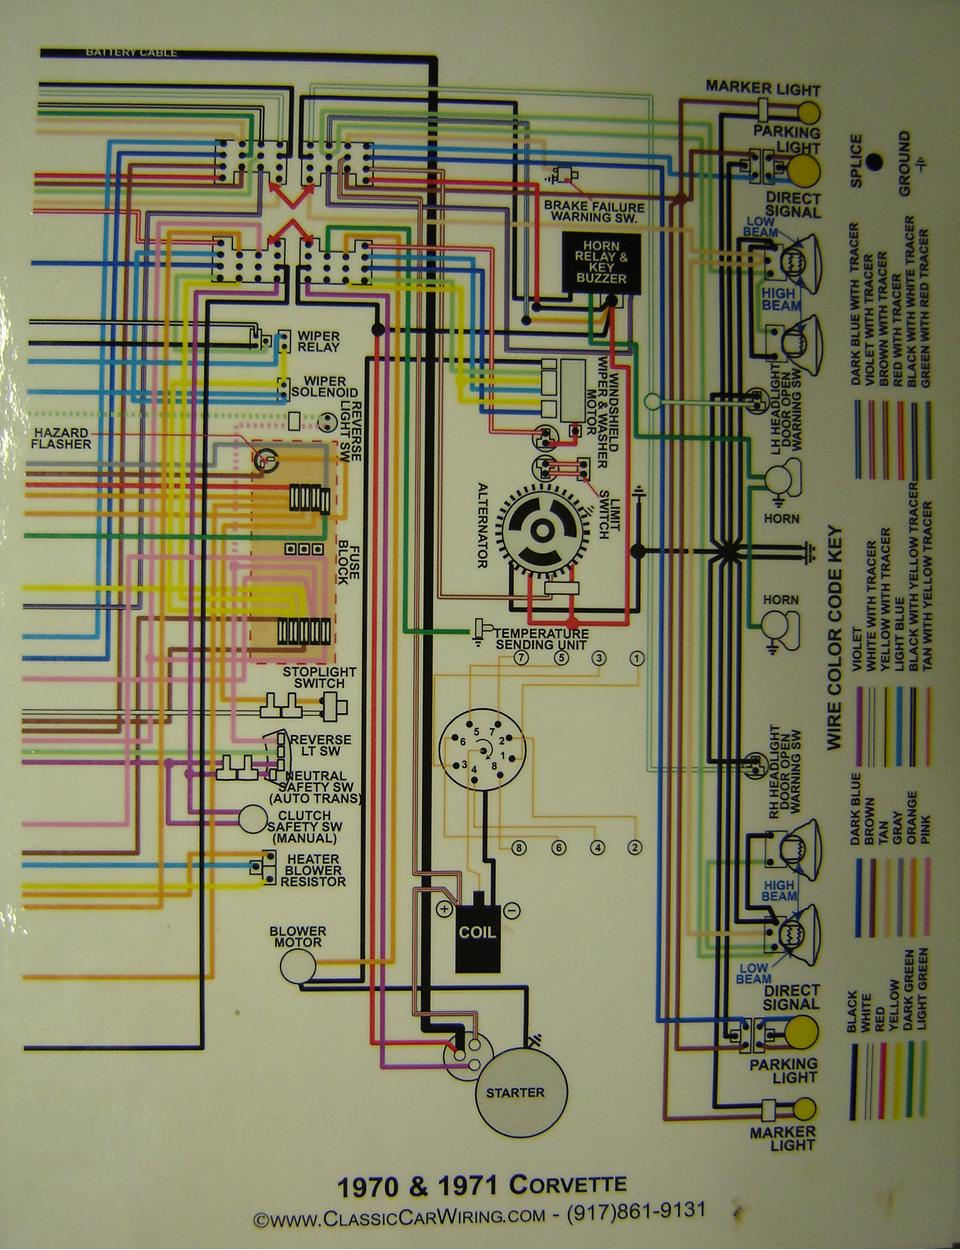 1970 71 corvette color wiring diagram B chevy diagrams 1971 corvette wiring diagram pdf at mifinder.co